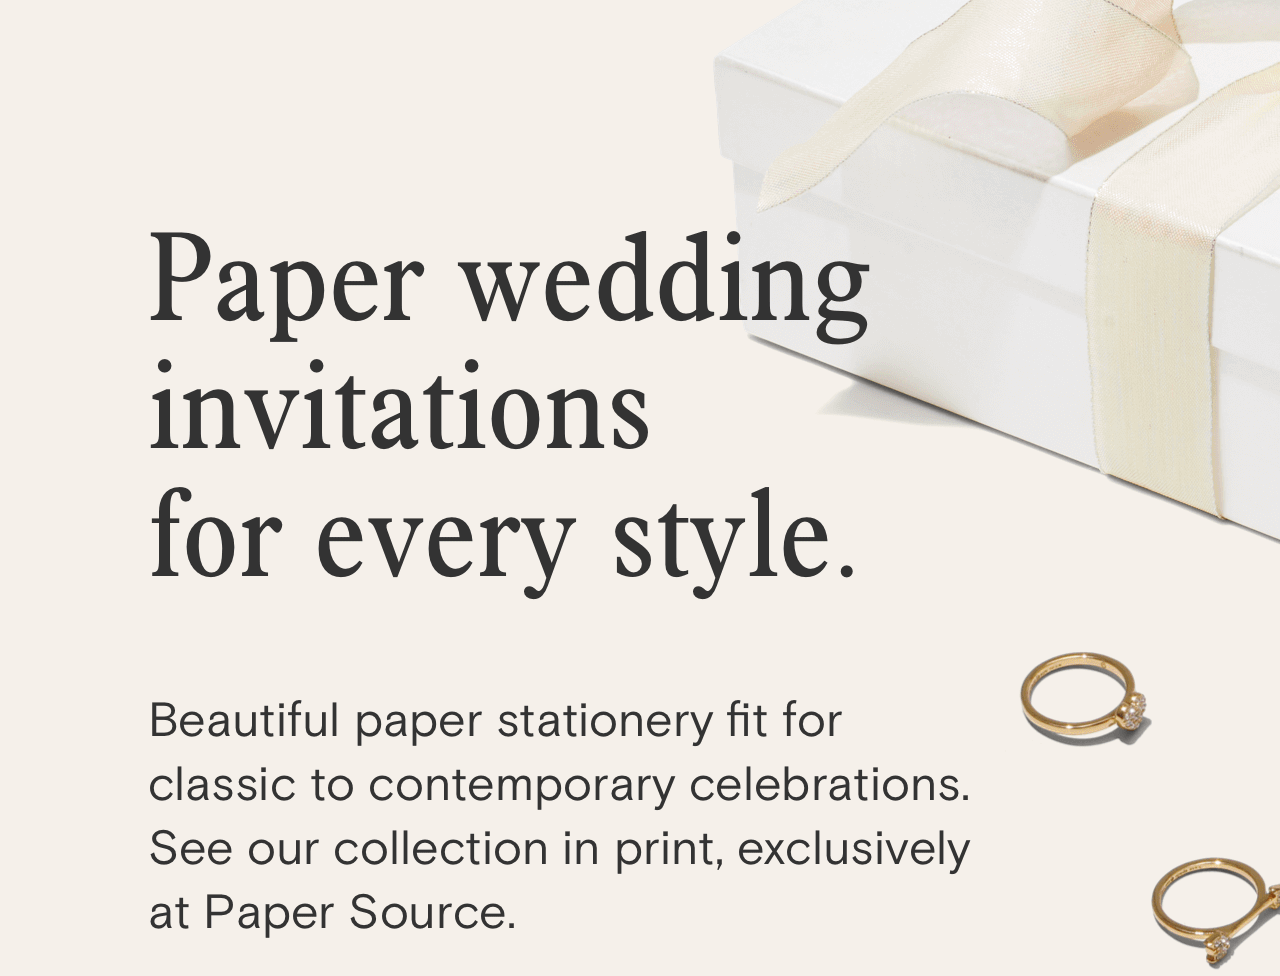 Paperless Post: Paper wedding invitations? Meet your match. | Milled